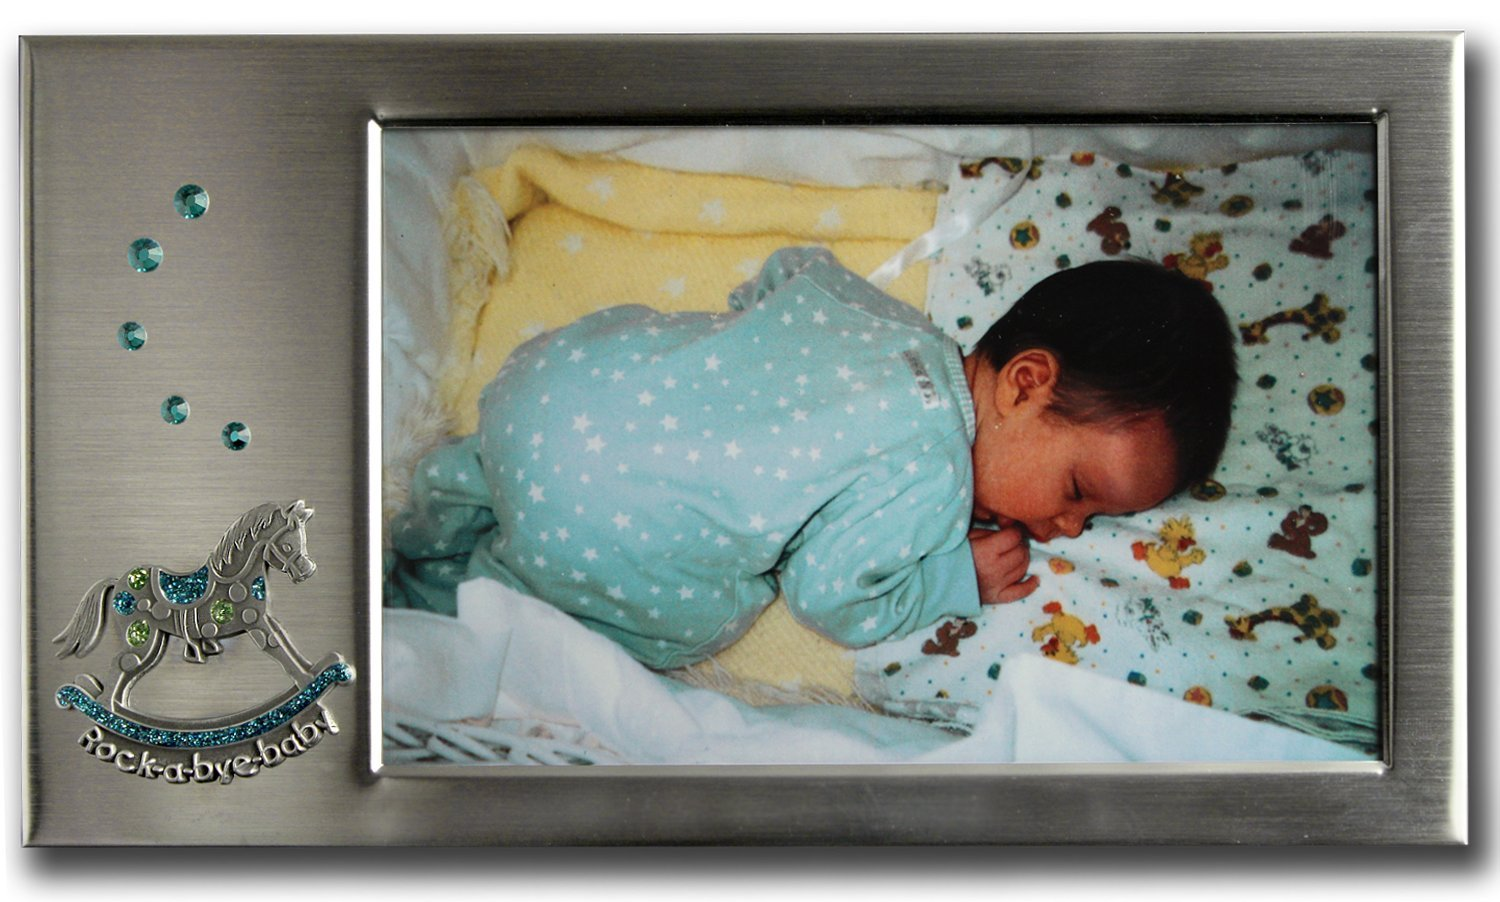 8 by 5-Inch Cathedral Art W384 Rock-a-Bye Baby Frame